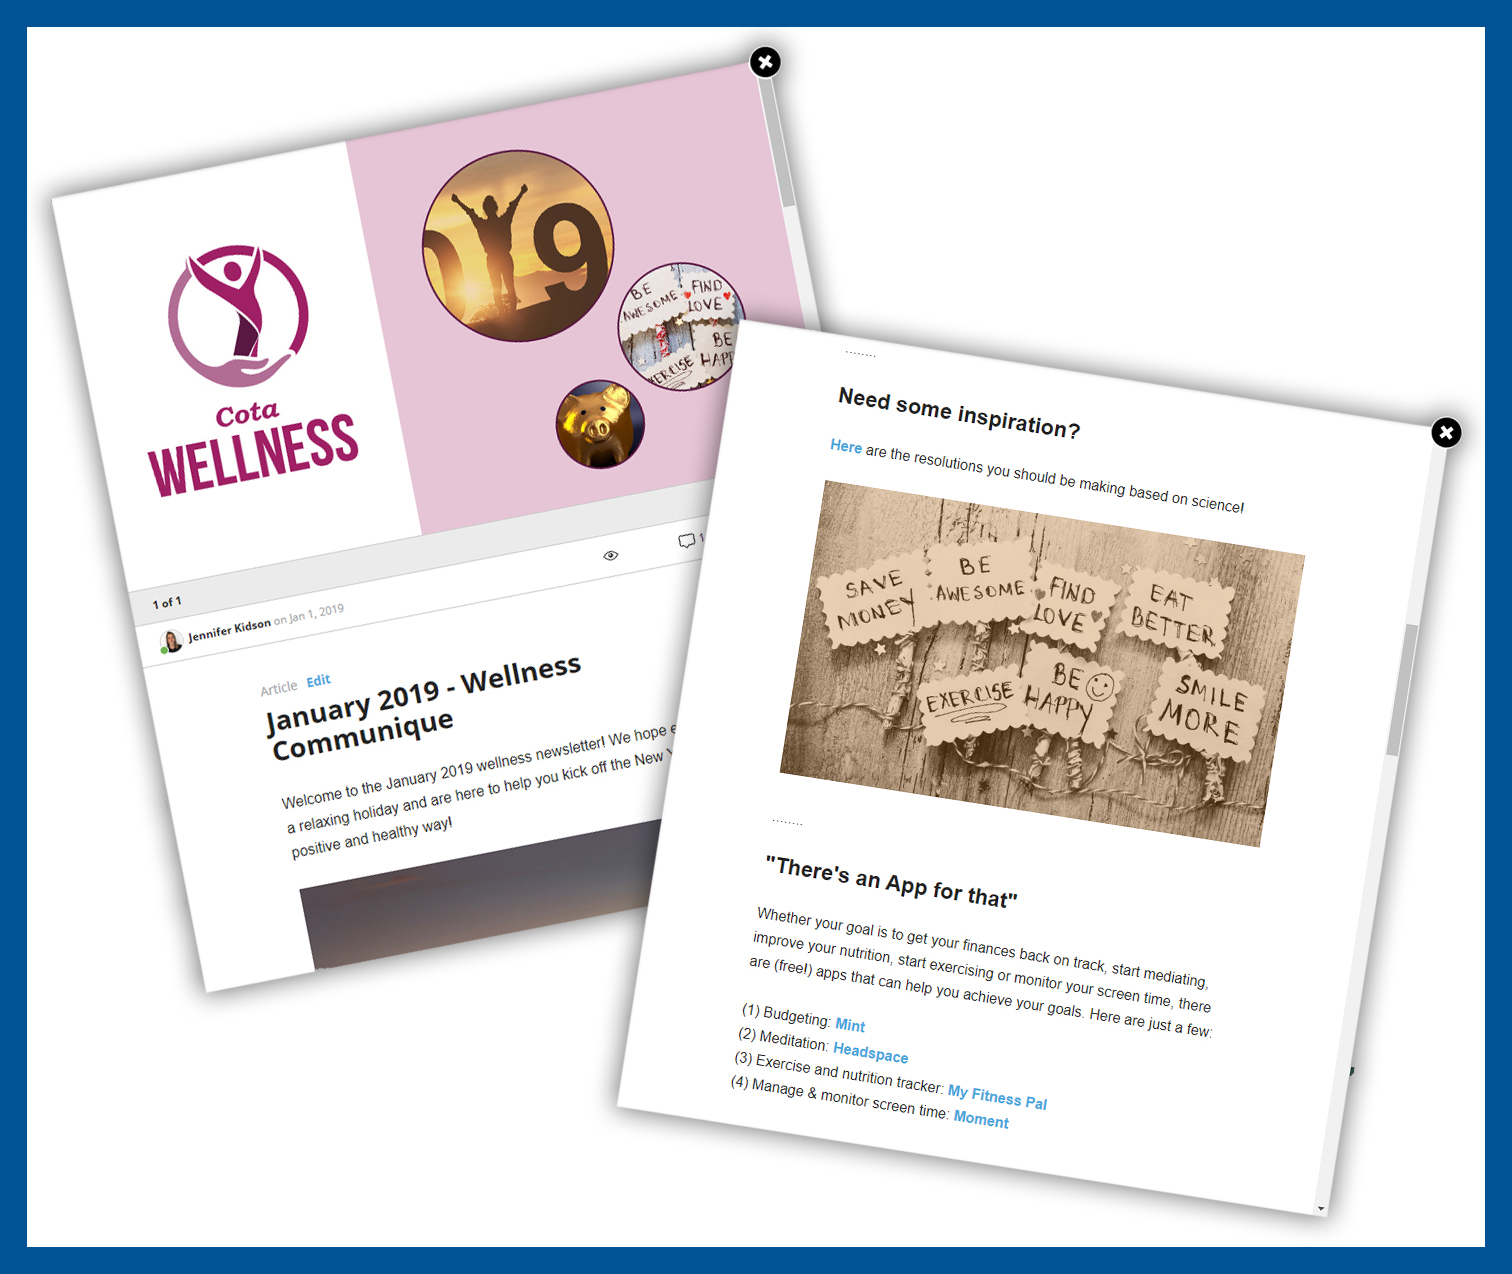 RECOGNITION AND WELLNESS E-NEWSLETTER